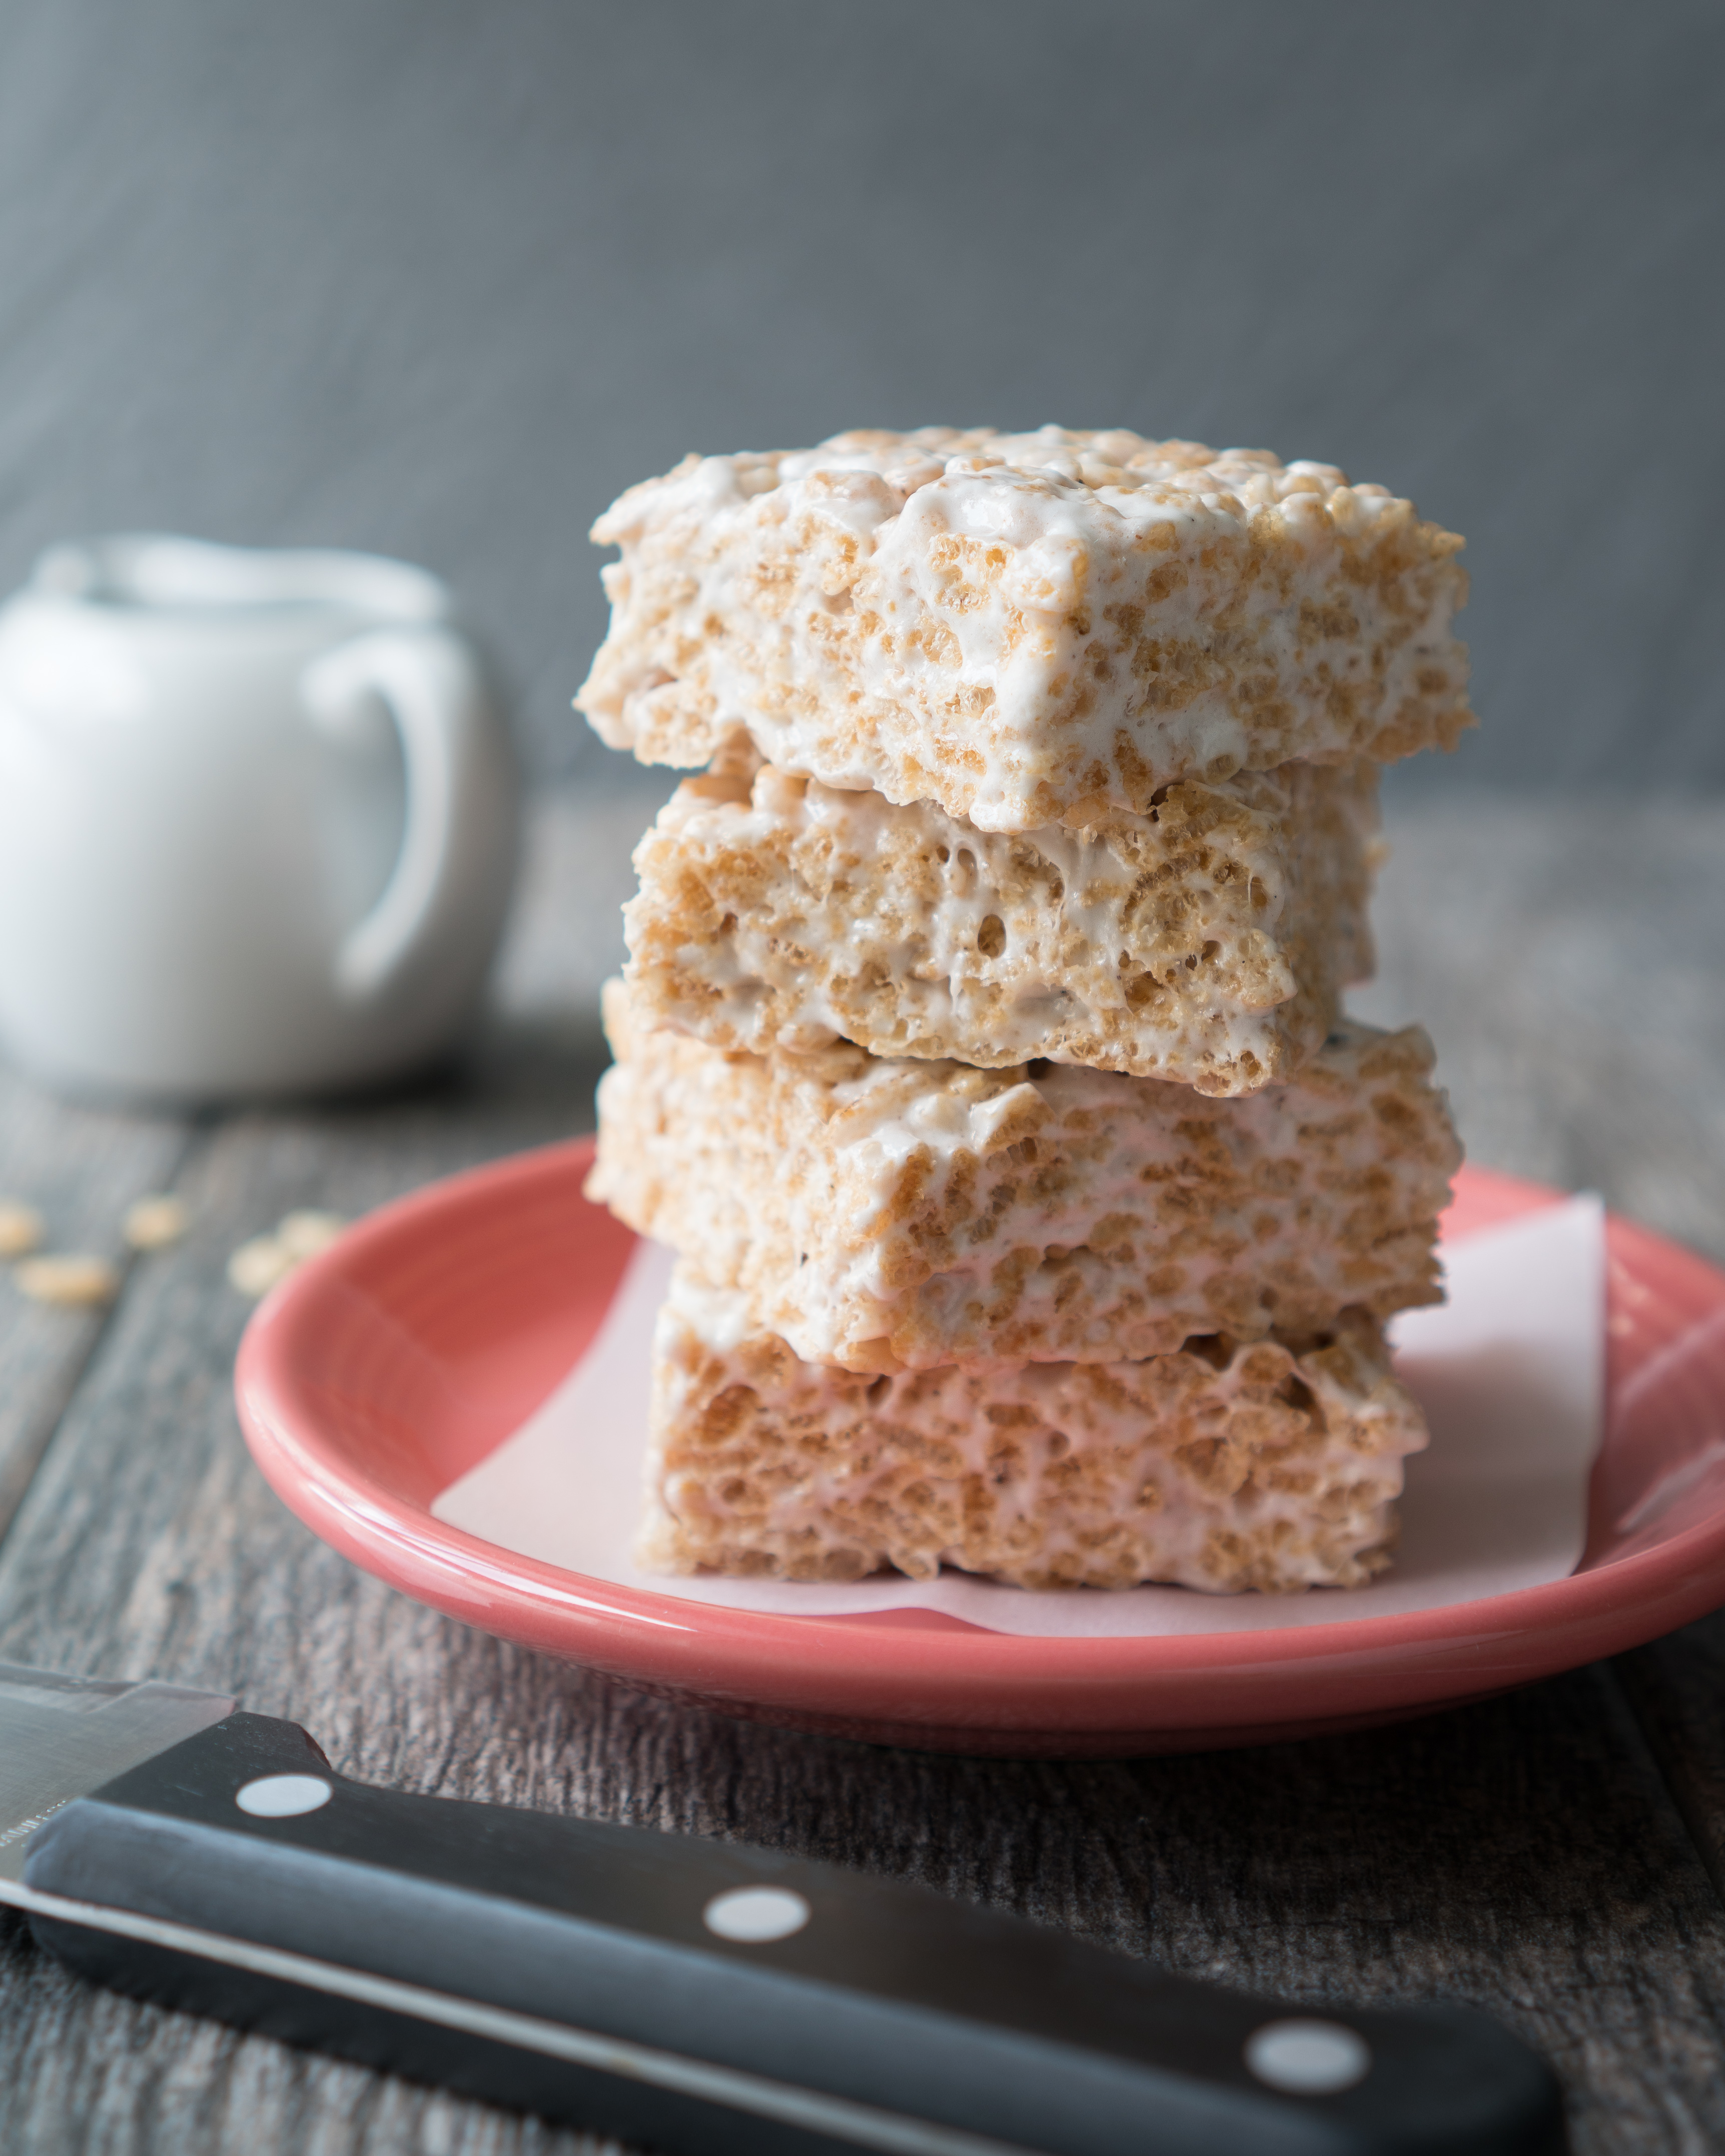 Cardamom Rice Krispie Treats – Simple recipe for Cardamom Rice Krispie Treats, gluten-free & vegan friendly. You'd never know that these use coconut oil instead of butter & brown rice cereal. A twist on the classic gooey marshmallow square with vanilla, cardamom, cinnamon, and salt! ♥ | freeyourfork.com